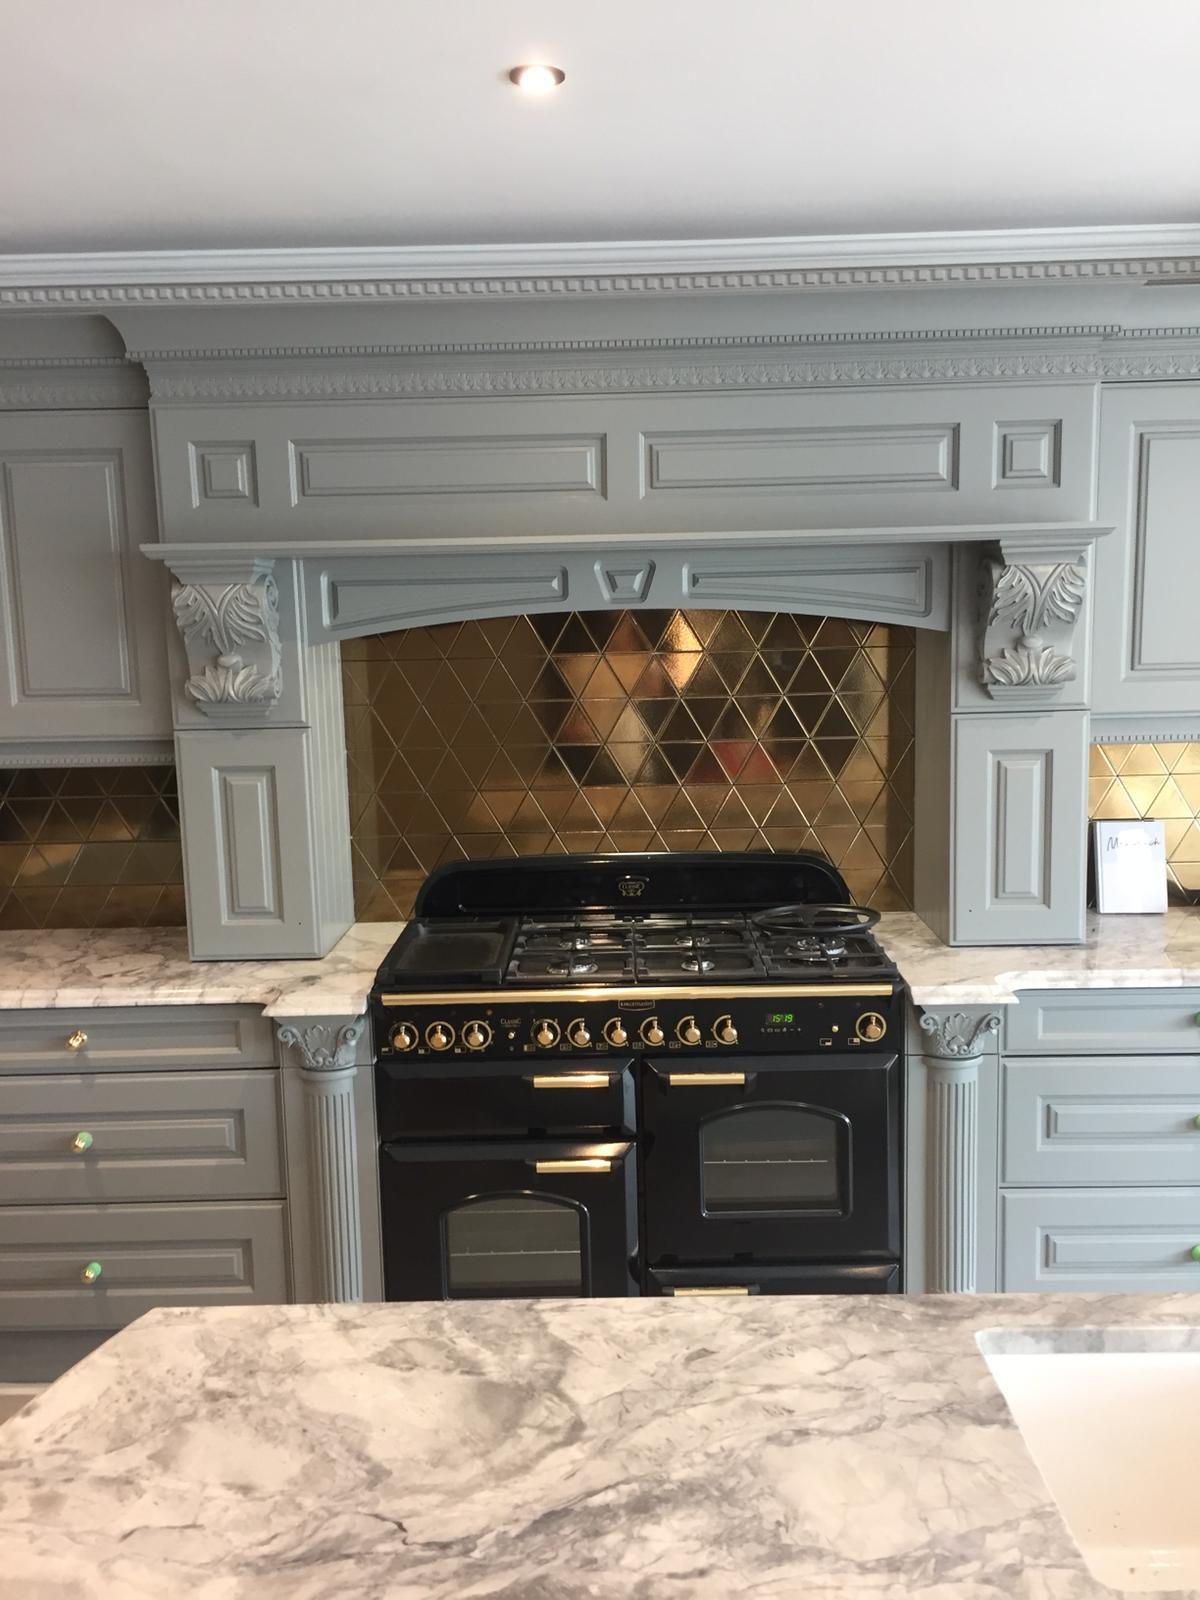 Hand painted bespoke kitchen in Belsize Park 7